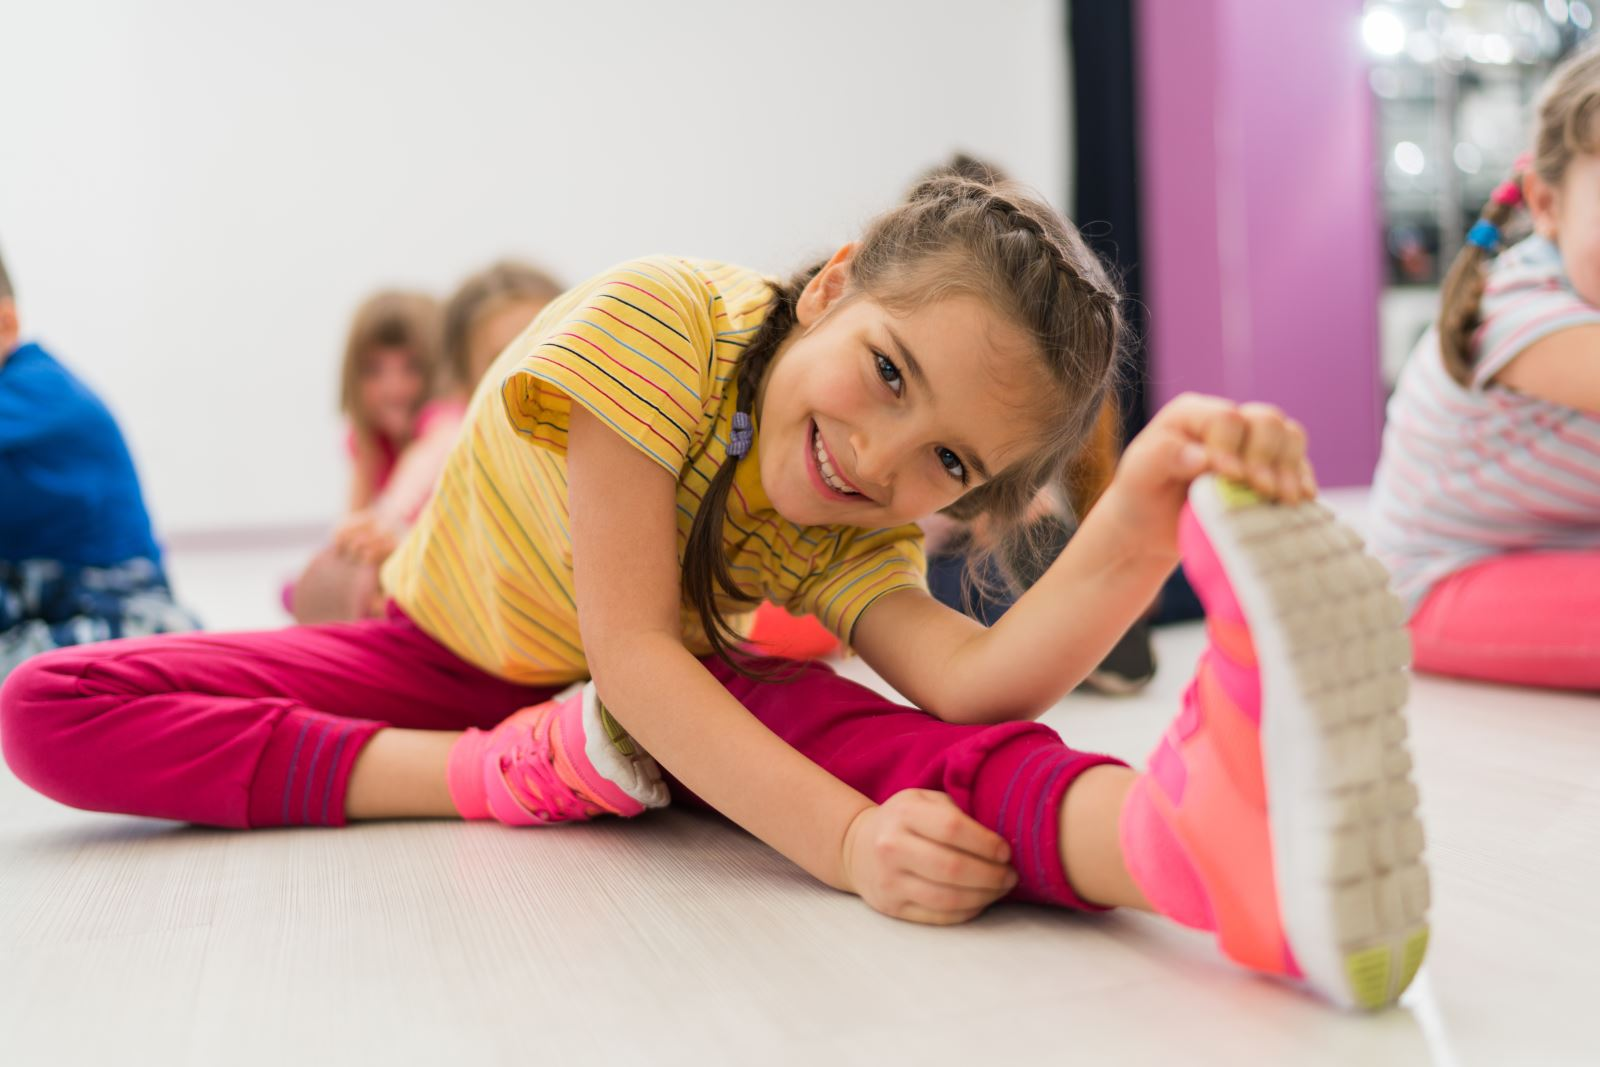 young girl stretching